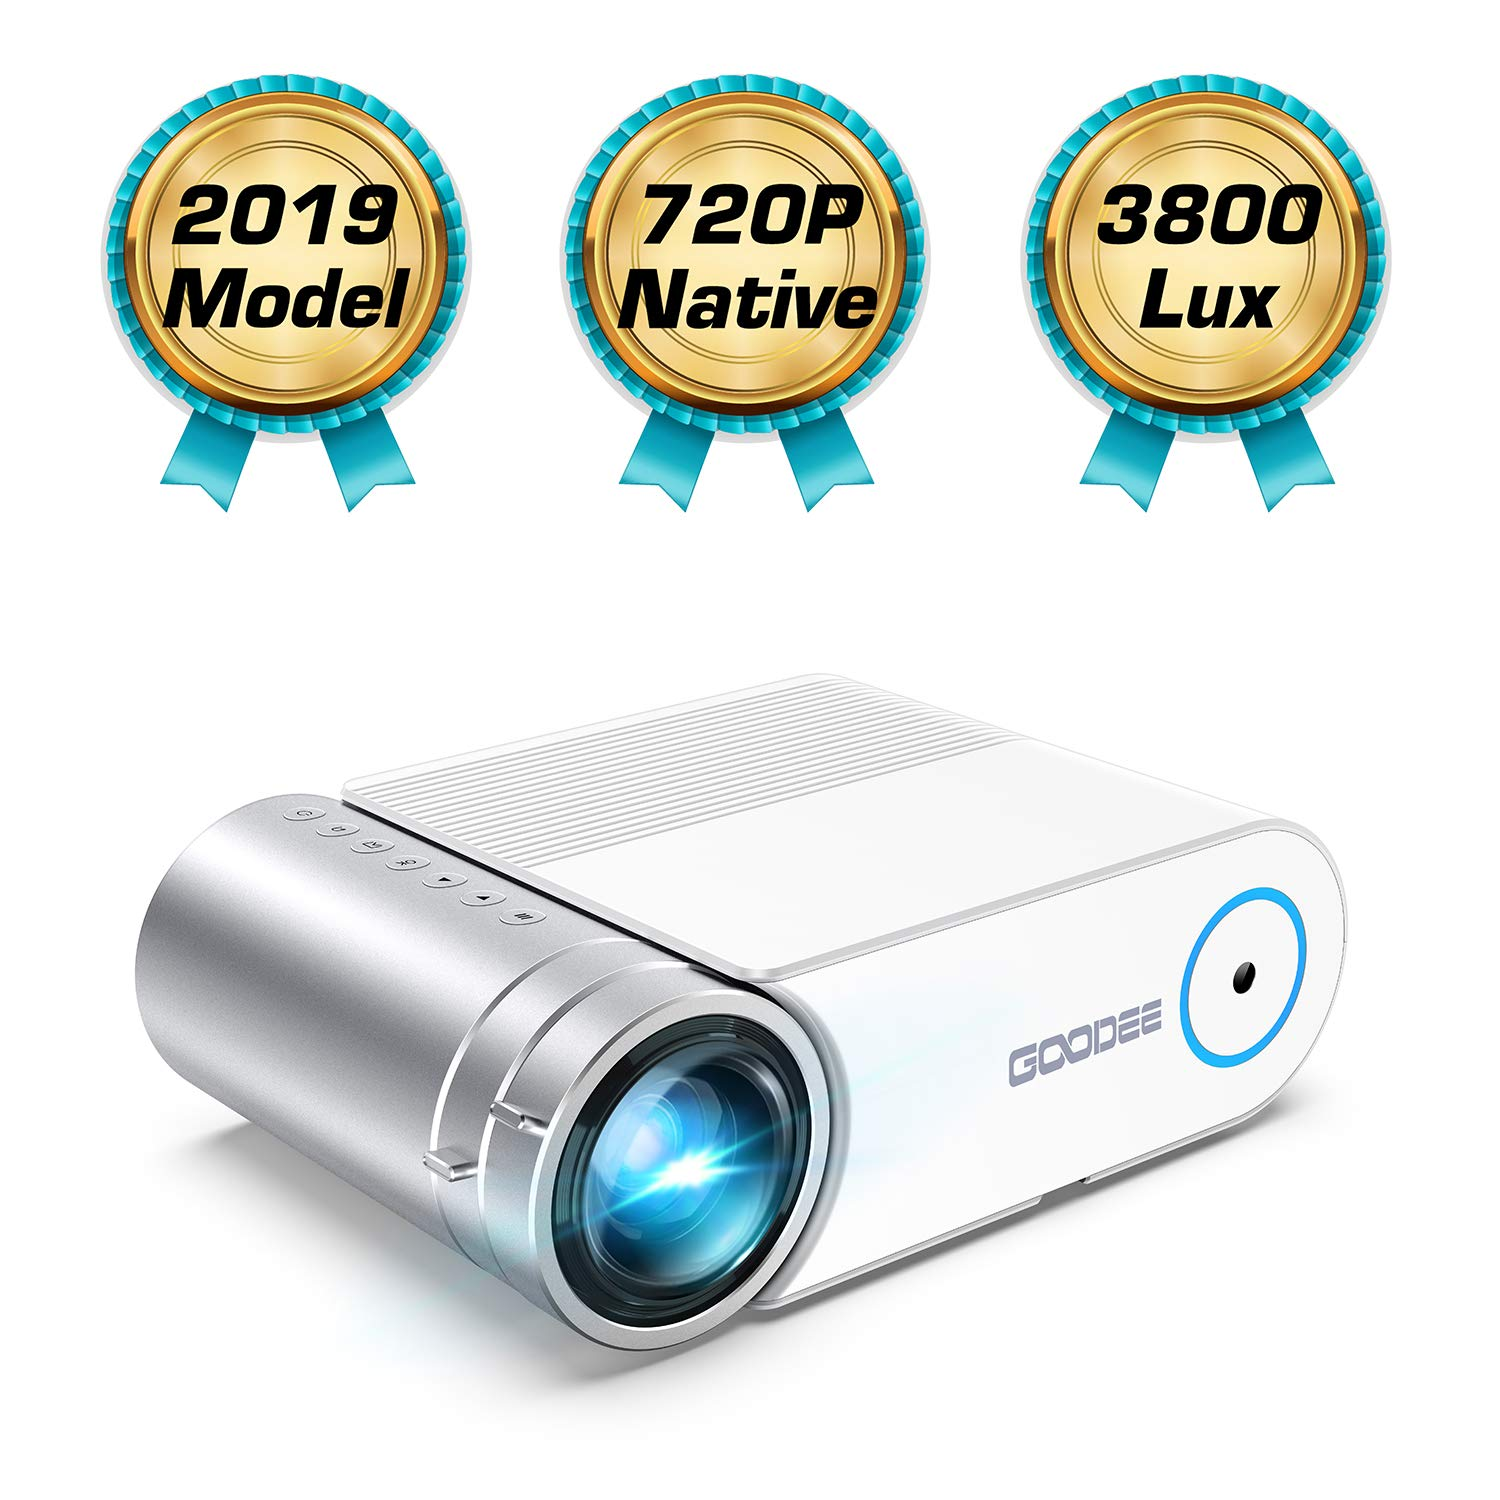 Mini Projector, GooDee HD Video Projector 3800 Lux with 50,000 Hrs, 200 inch Home Theater Movie Projector, 1080P Supported Compatible with Fire TV Stick, PS4, HDMI, VGA, USB